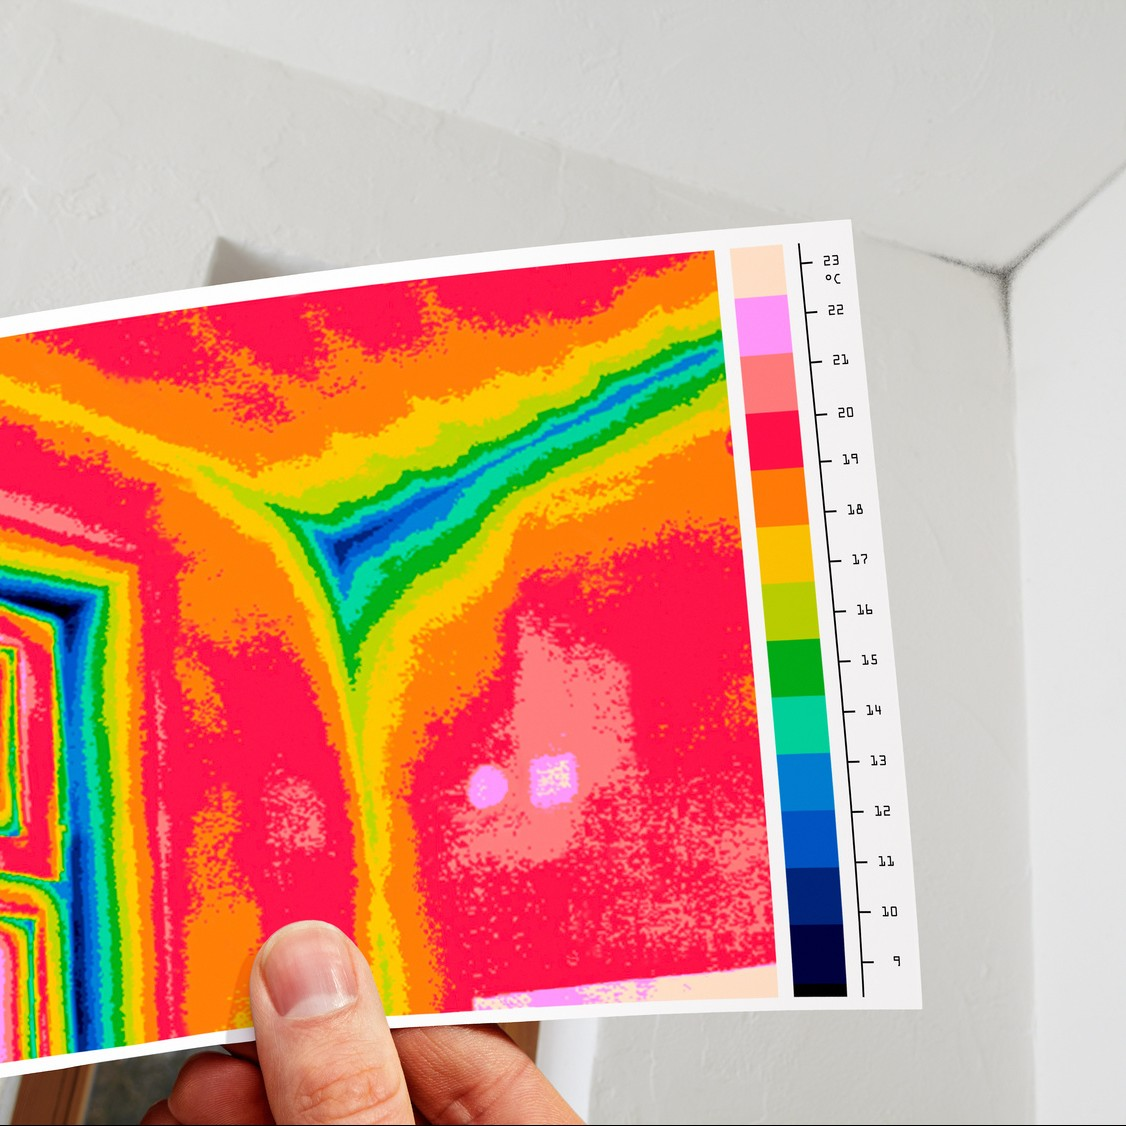 Thermographie infrarouge et moississure